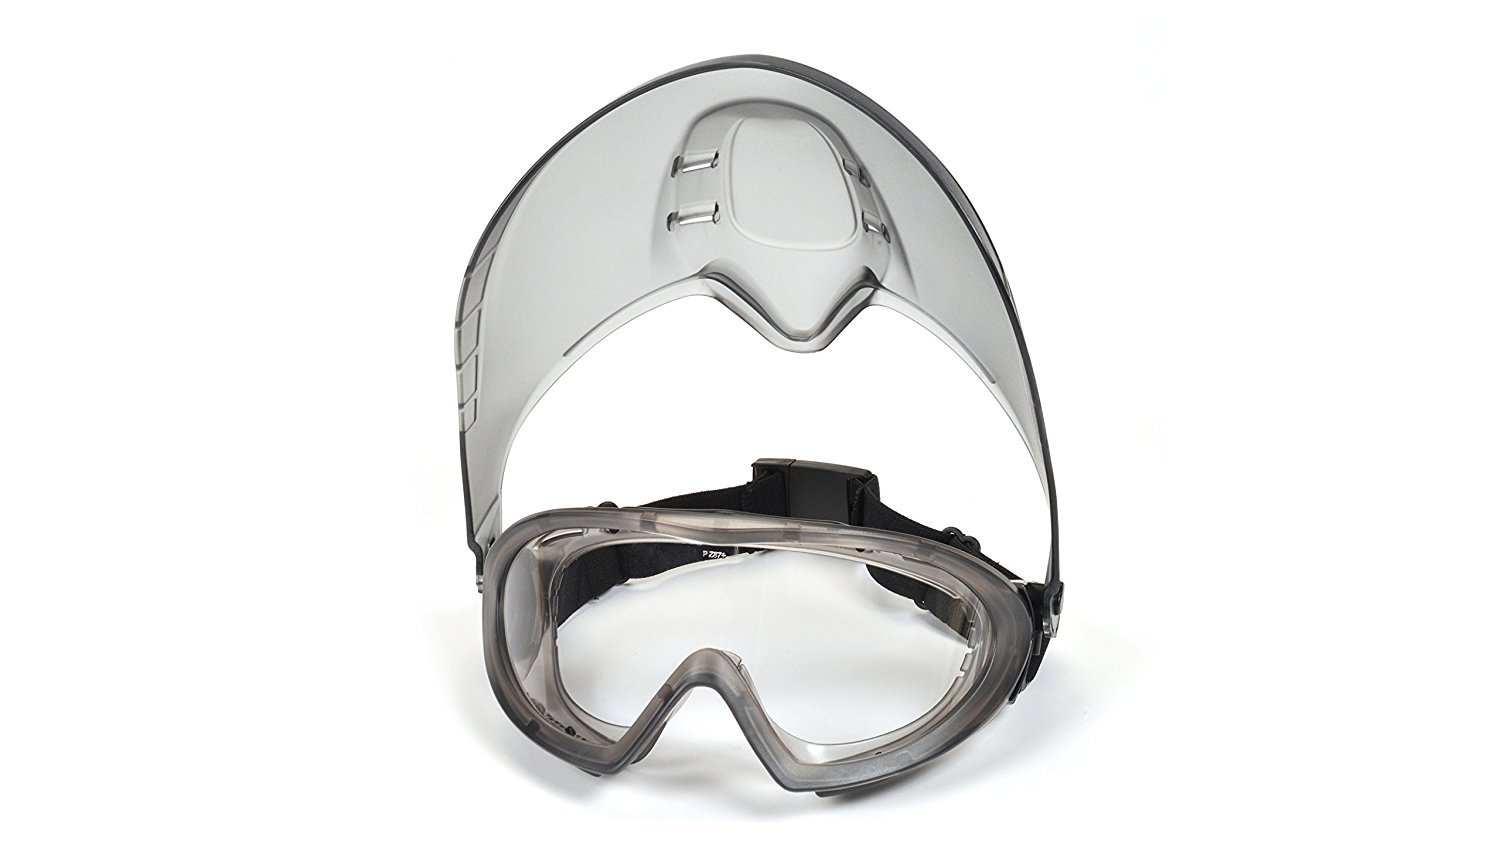 Pyramex Capstone Direct/Indirect Goggle with Faceshield Attachment GG504TShield (6 Pack) by Pyramex (Image #3)